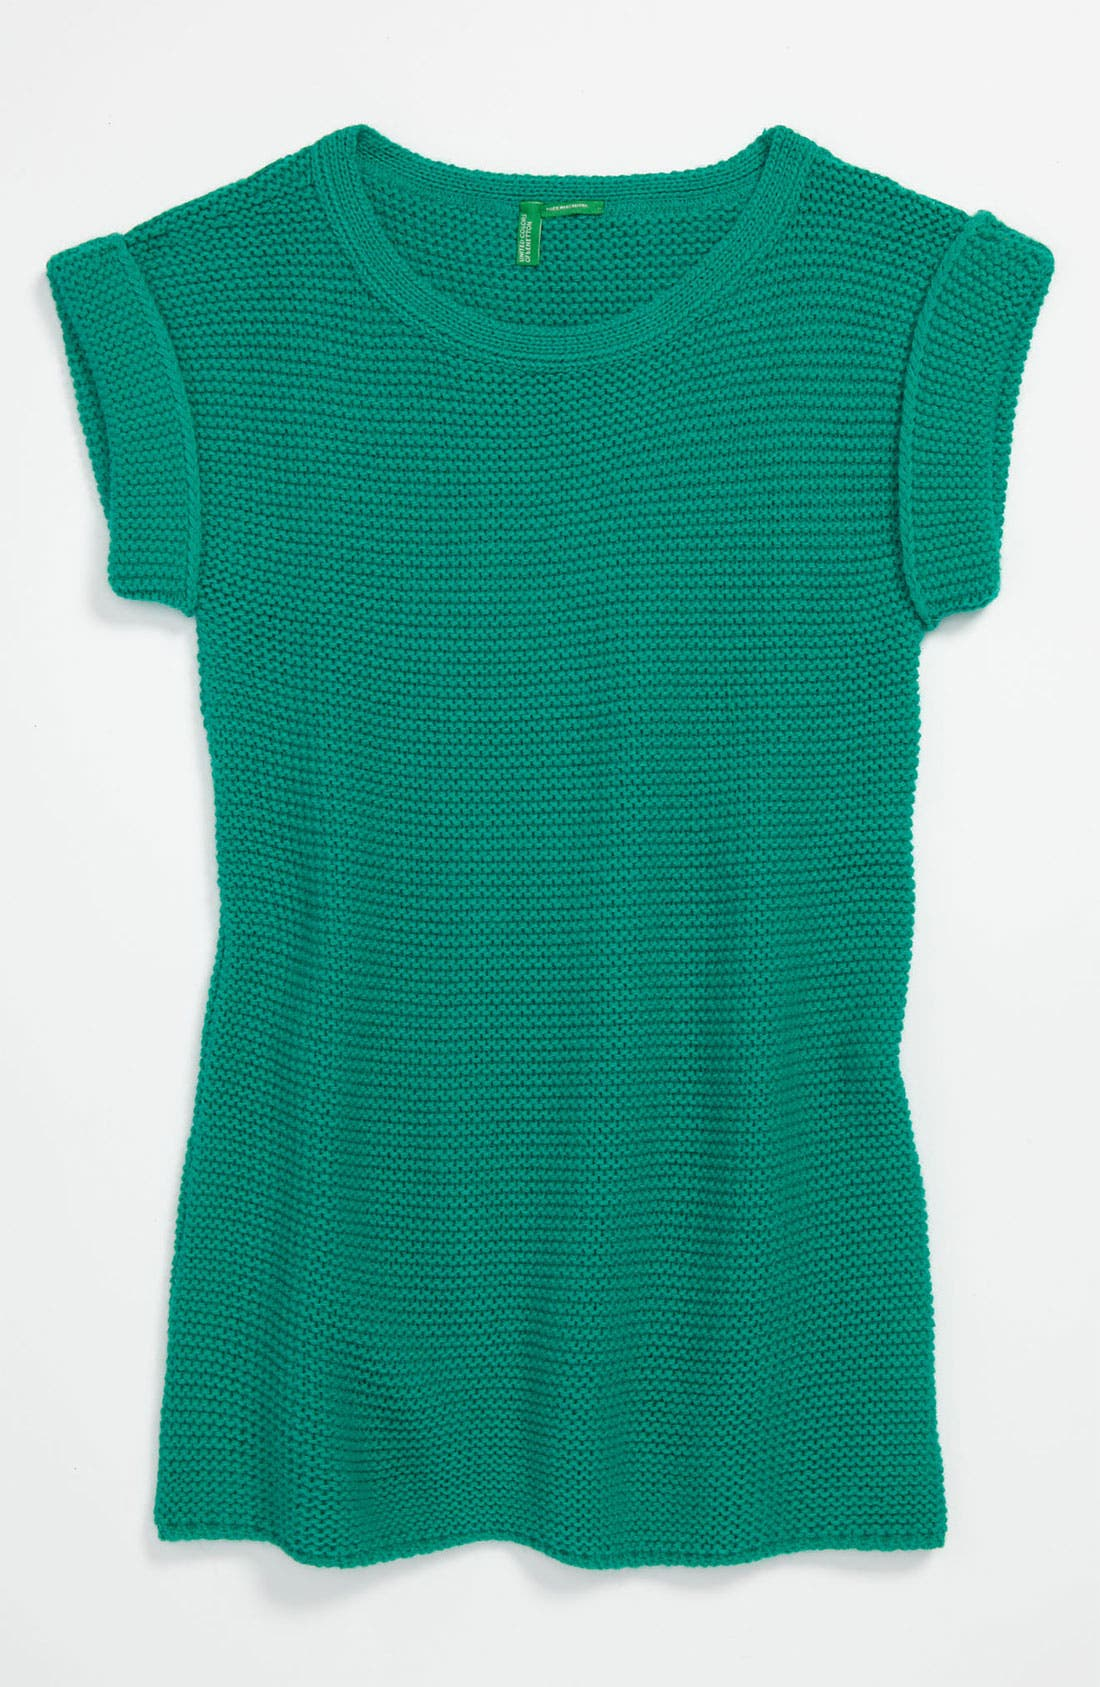 Alternate Image 1 Selected - United Colors of Benetton Kids Sweater Dress (Little Girls & Big Girls)